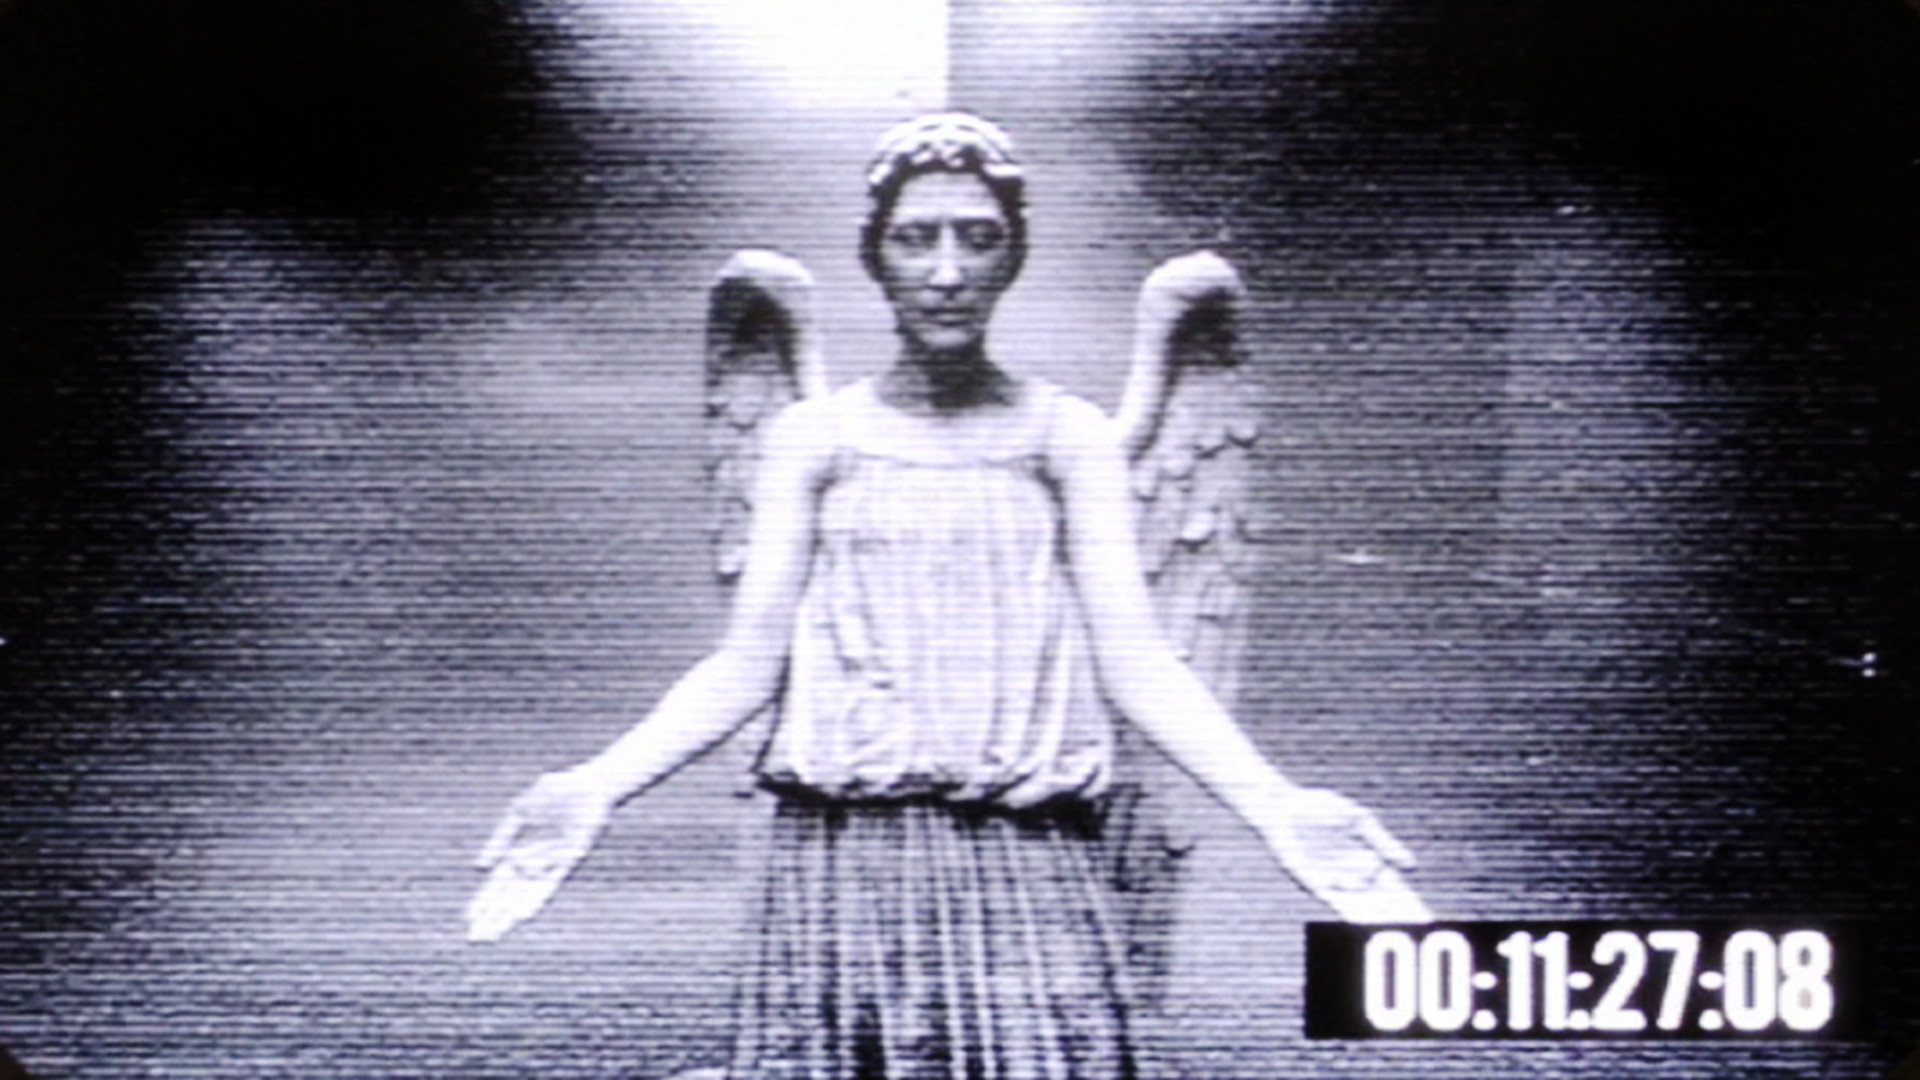 Weeping Angel Wallpaper Moving Screen 57 images 1920x1080